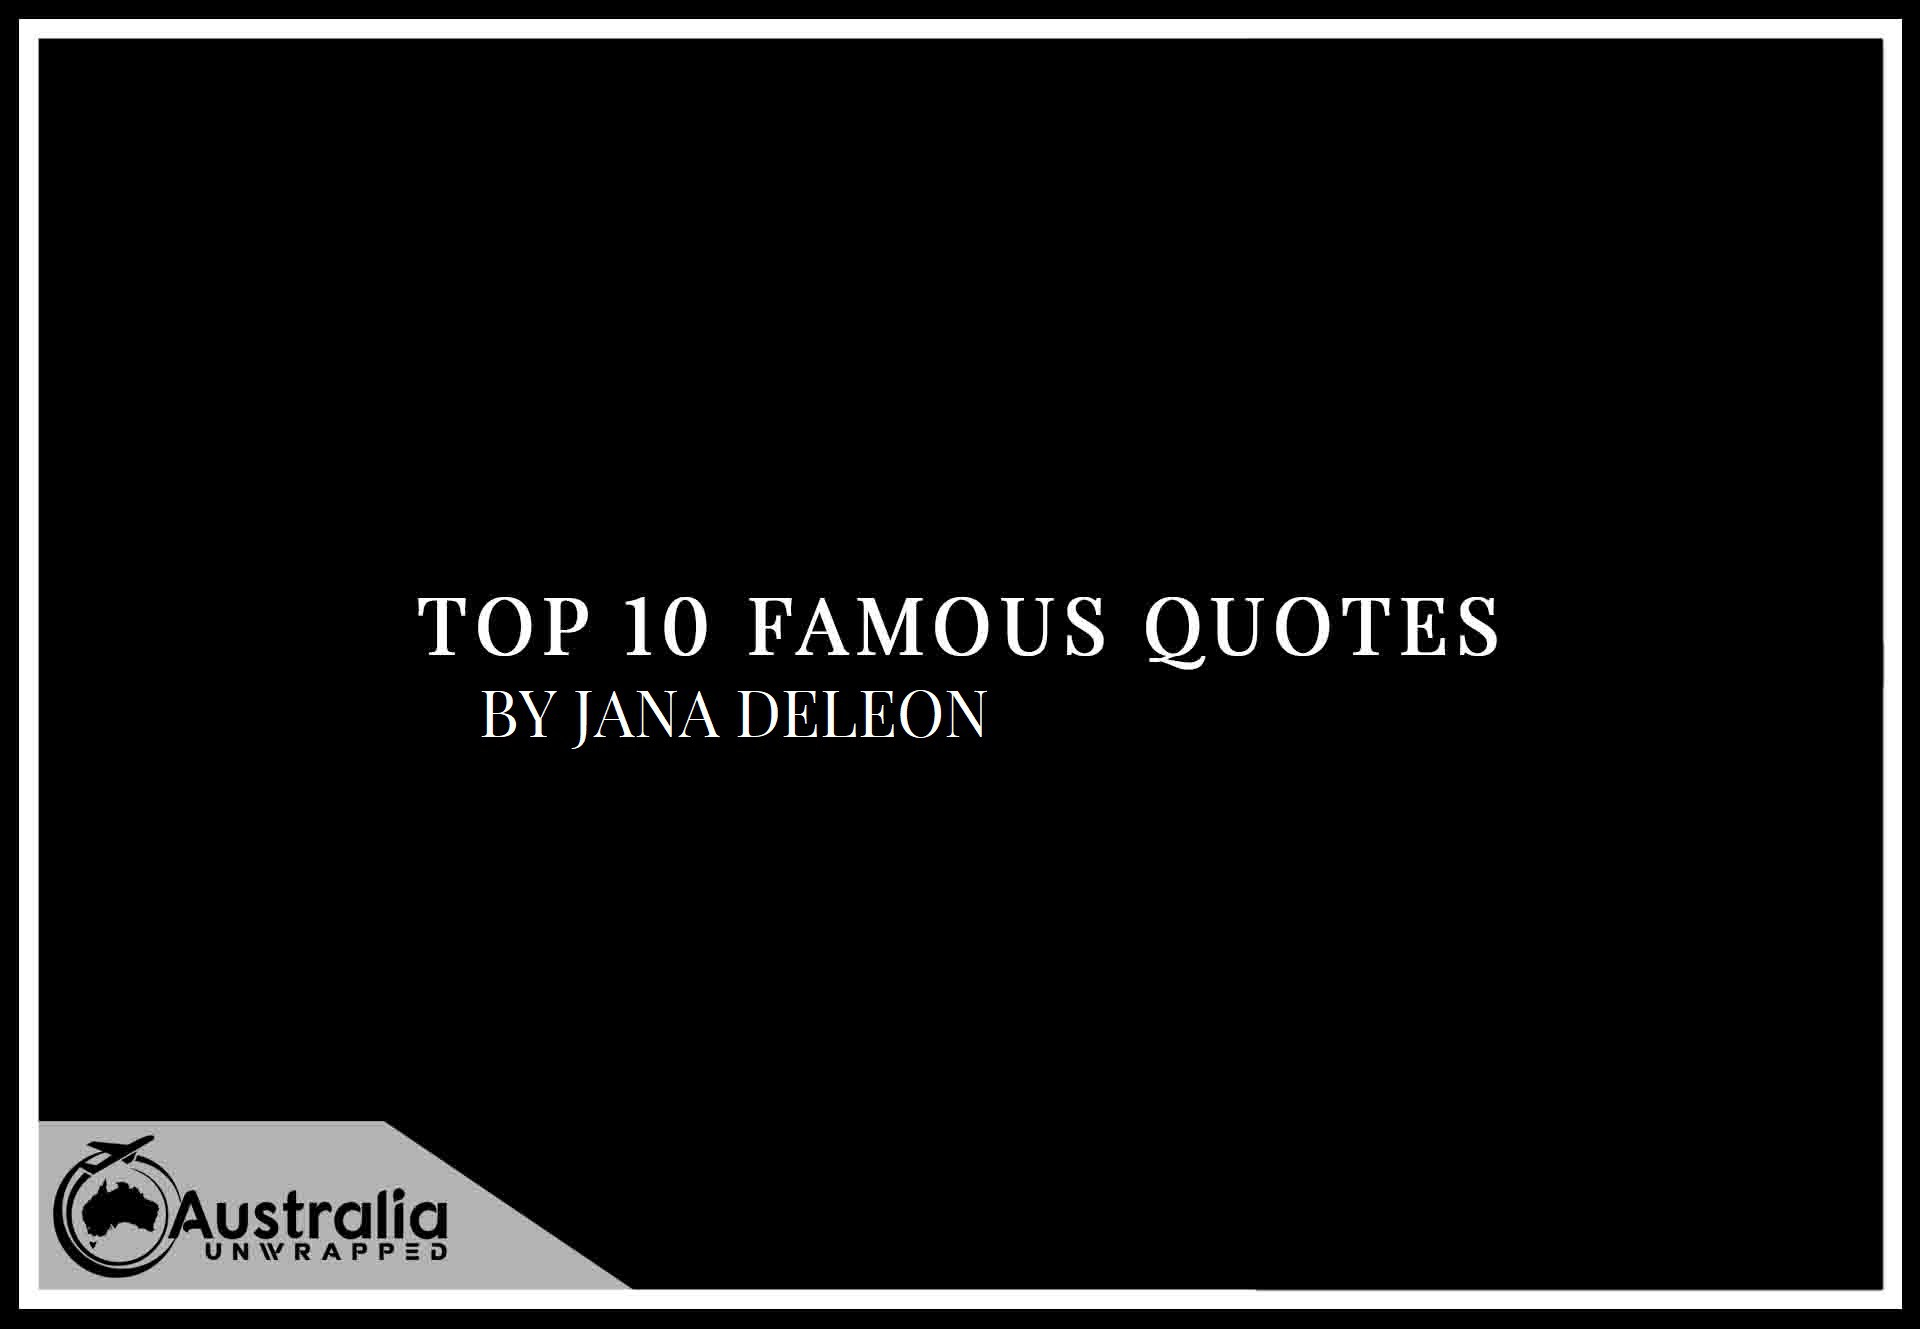 Top 10 Famous Quotes by Author Jana Deleon